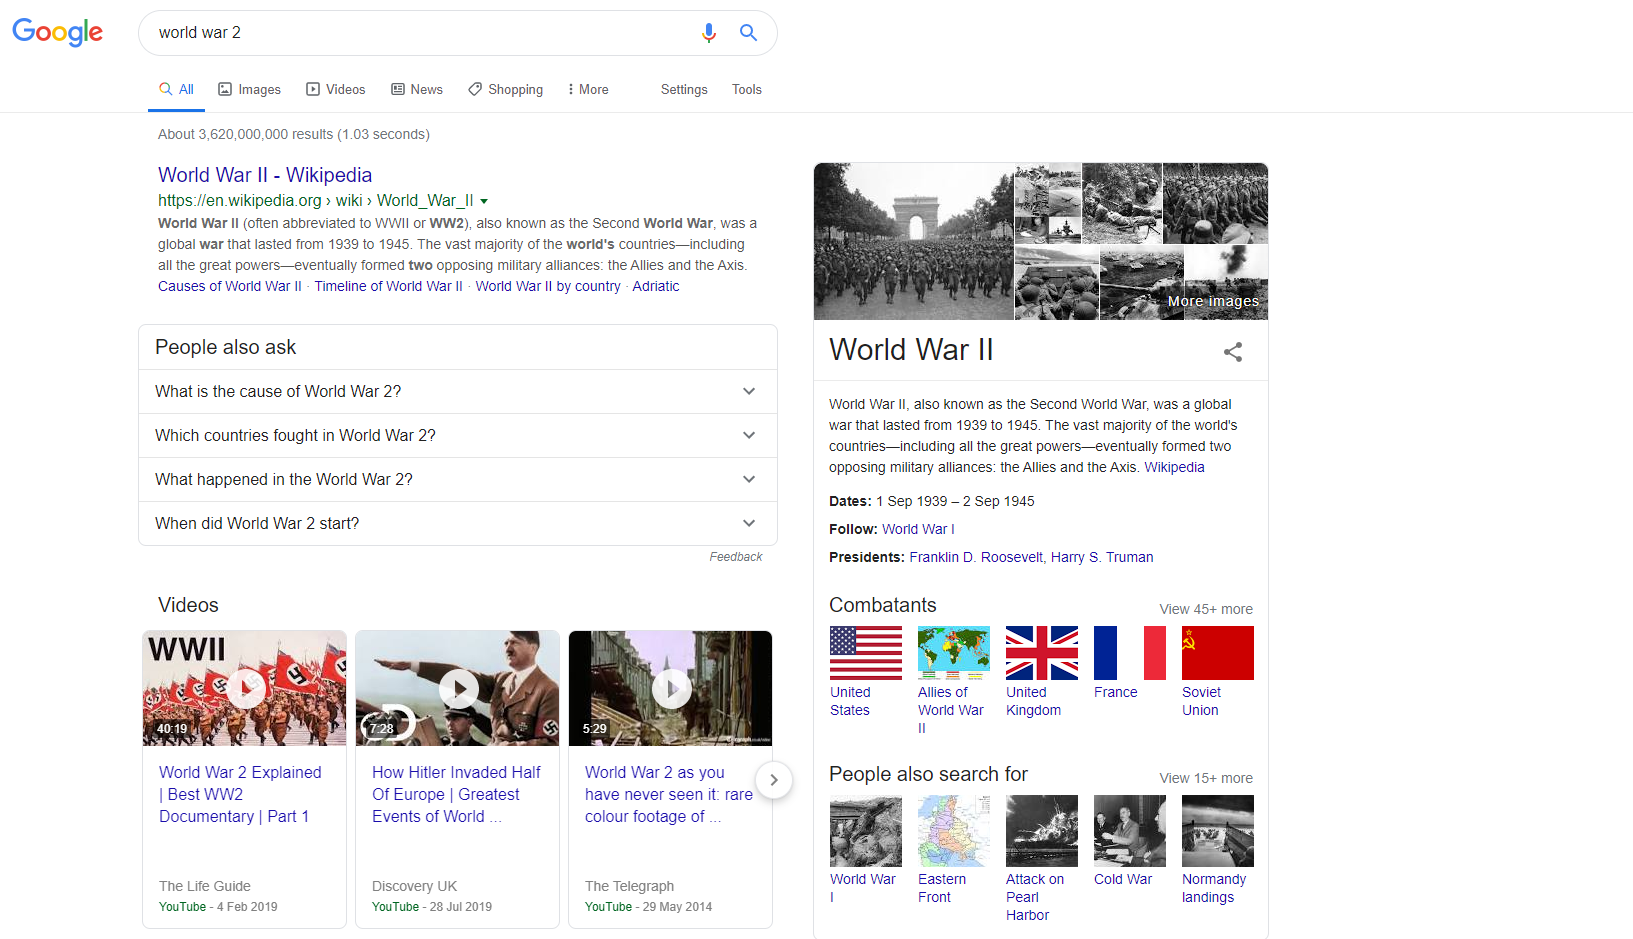 world war 2 - informational search